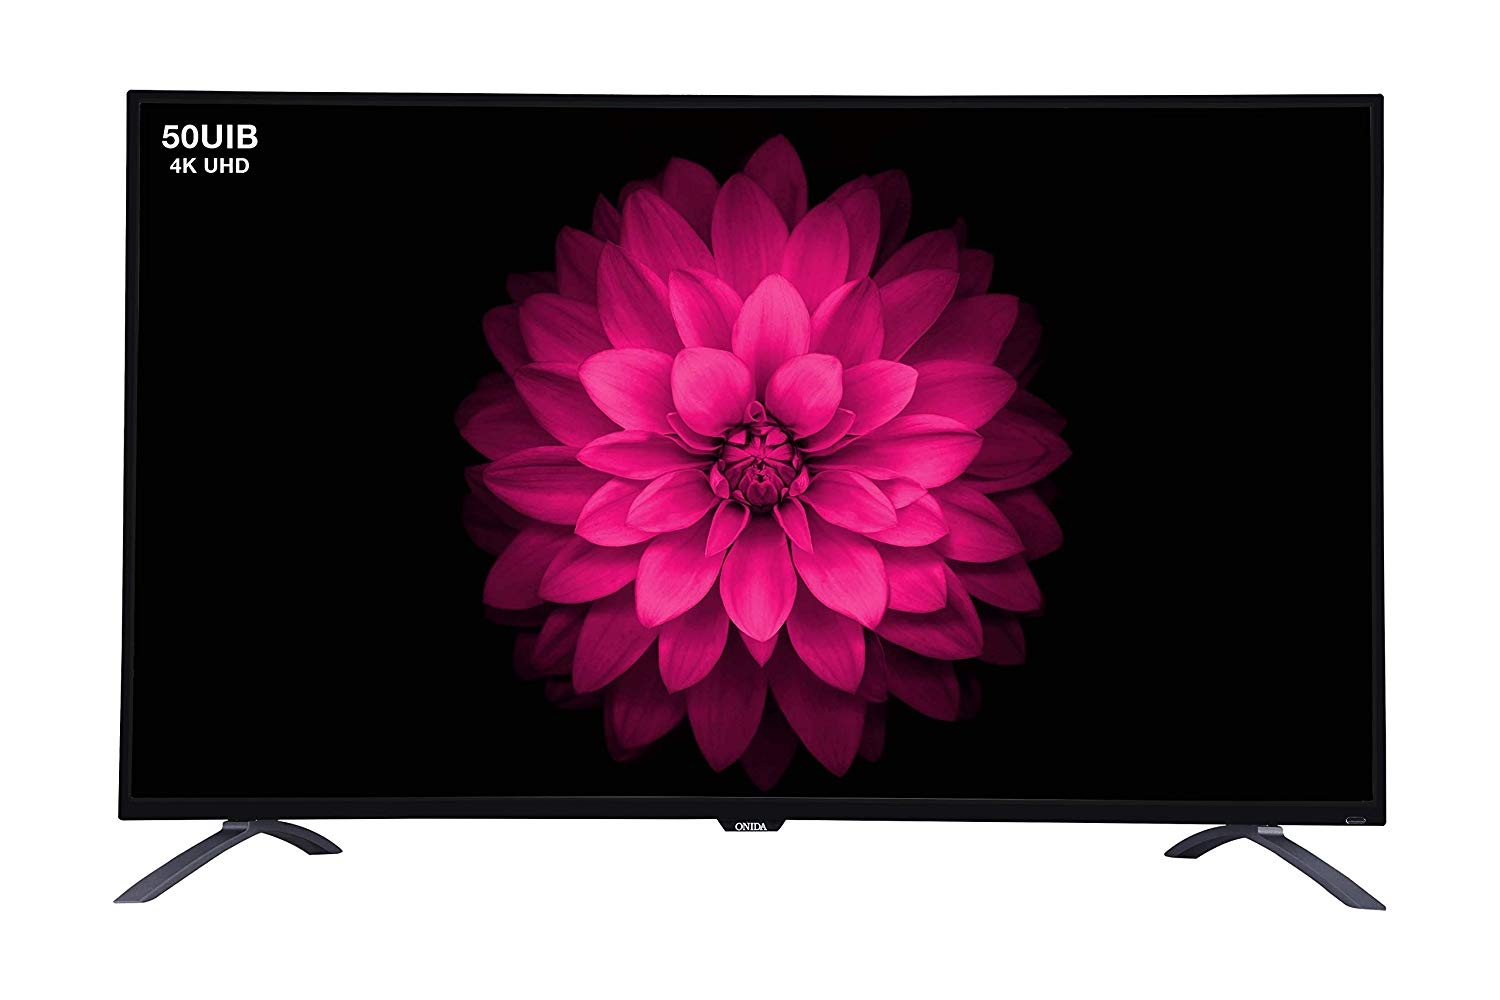 Onida 124.46 cm (50 inches) Live Genius 50UIB 4K UHD LED Smart TV (Black)